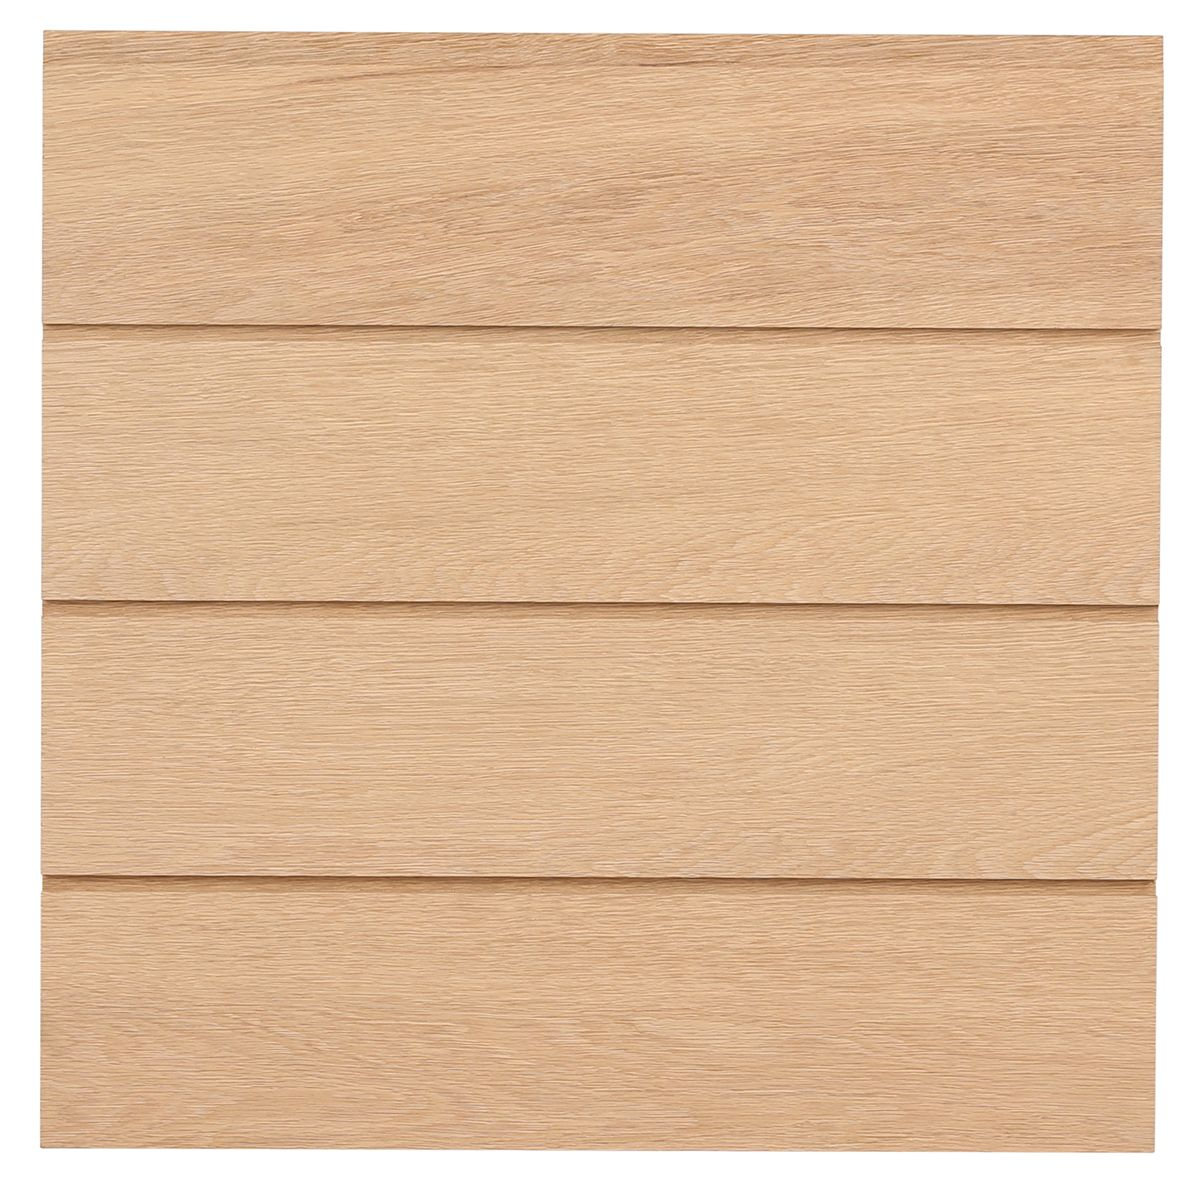 3 4 X 6 Smooth Face 6 3 4 Overall White Oak Ship Lap Interior Siding B612 Smooth Face Shiplap White Oak